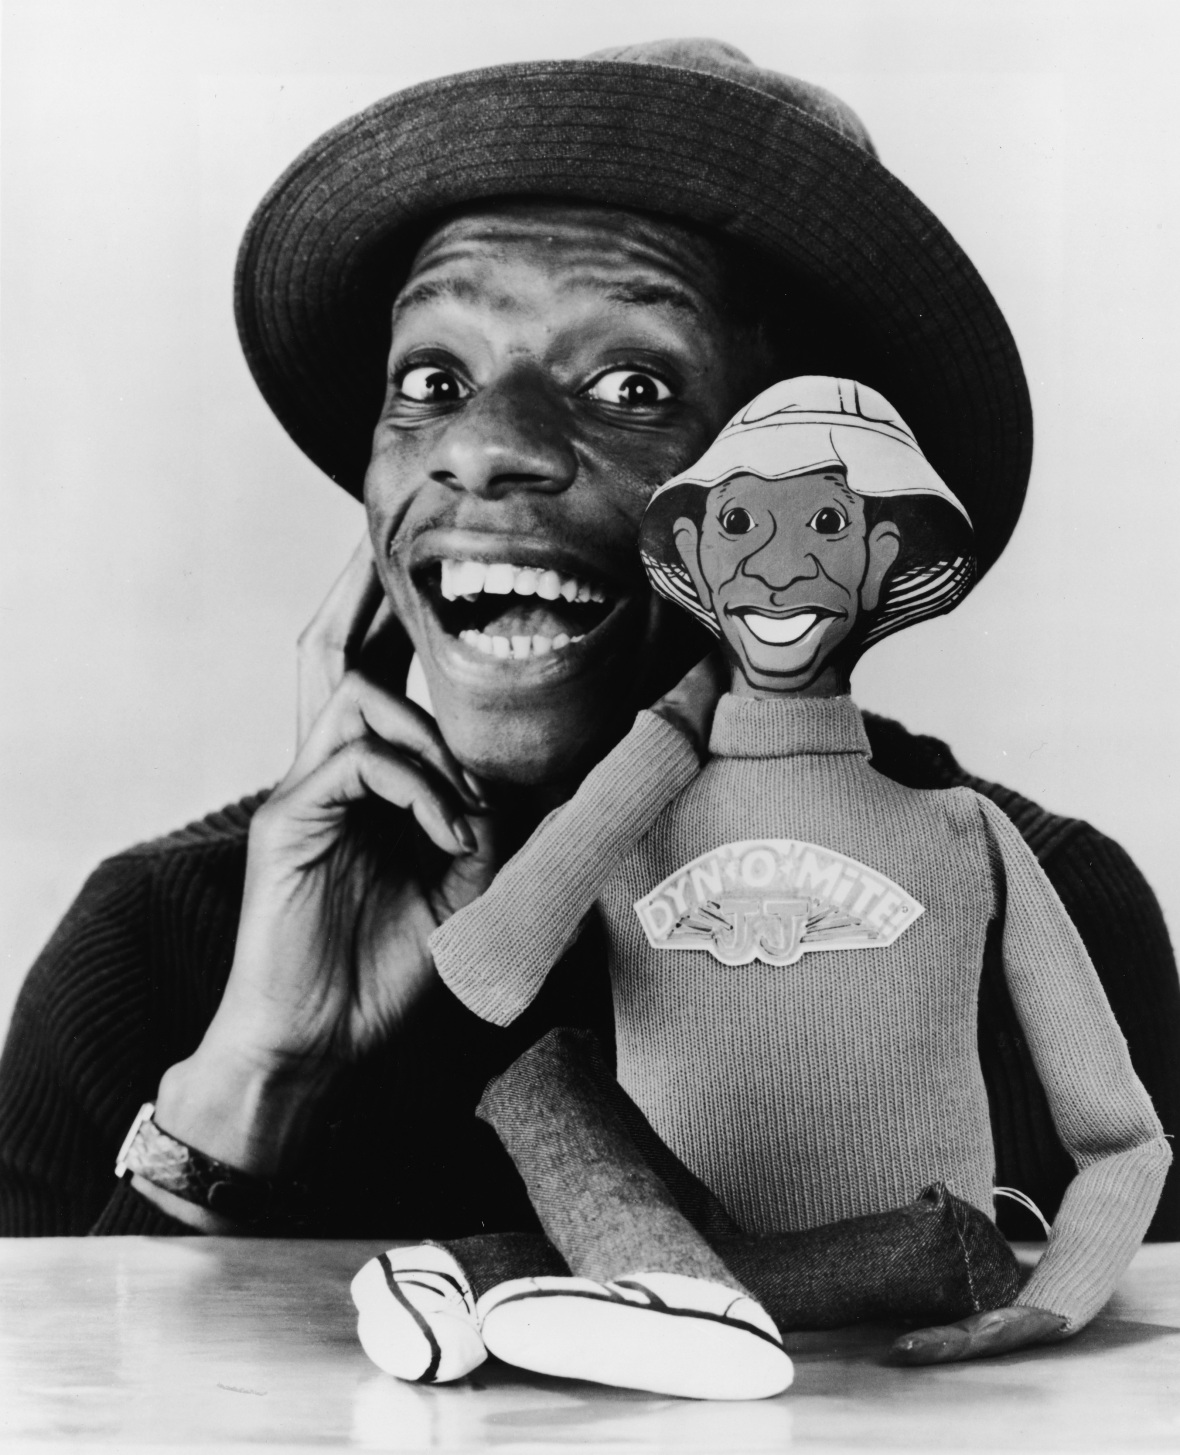 jimmie walker getty images